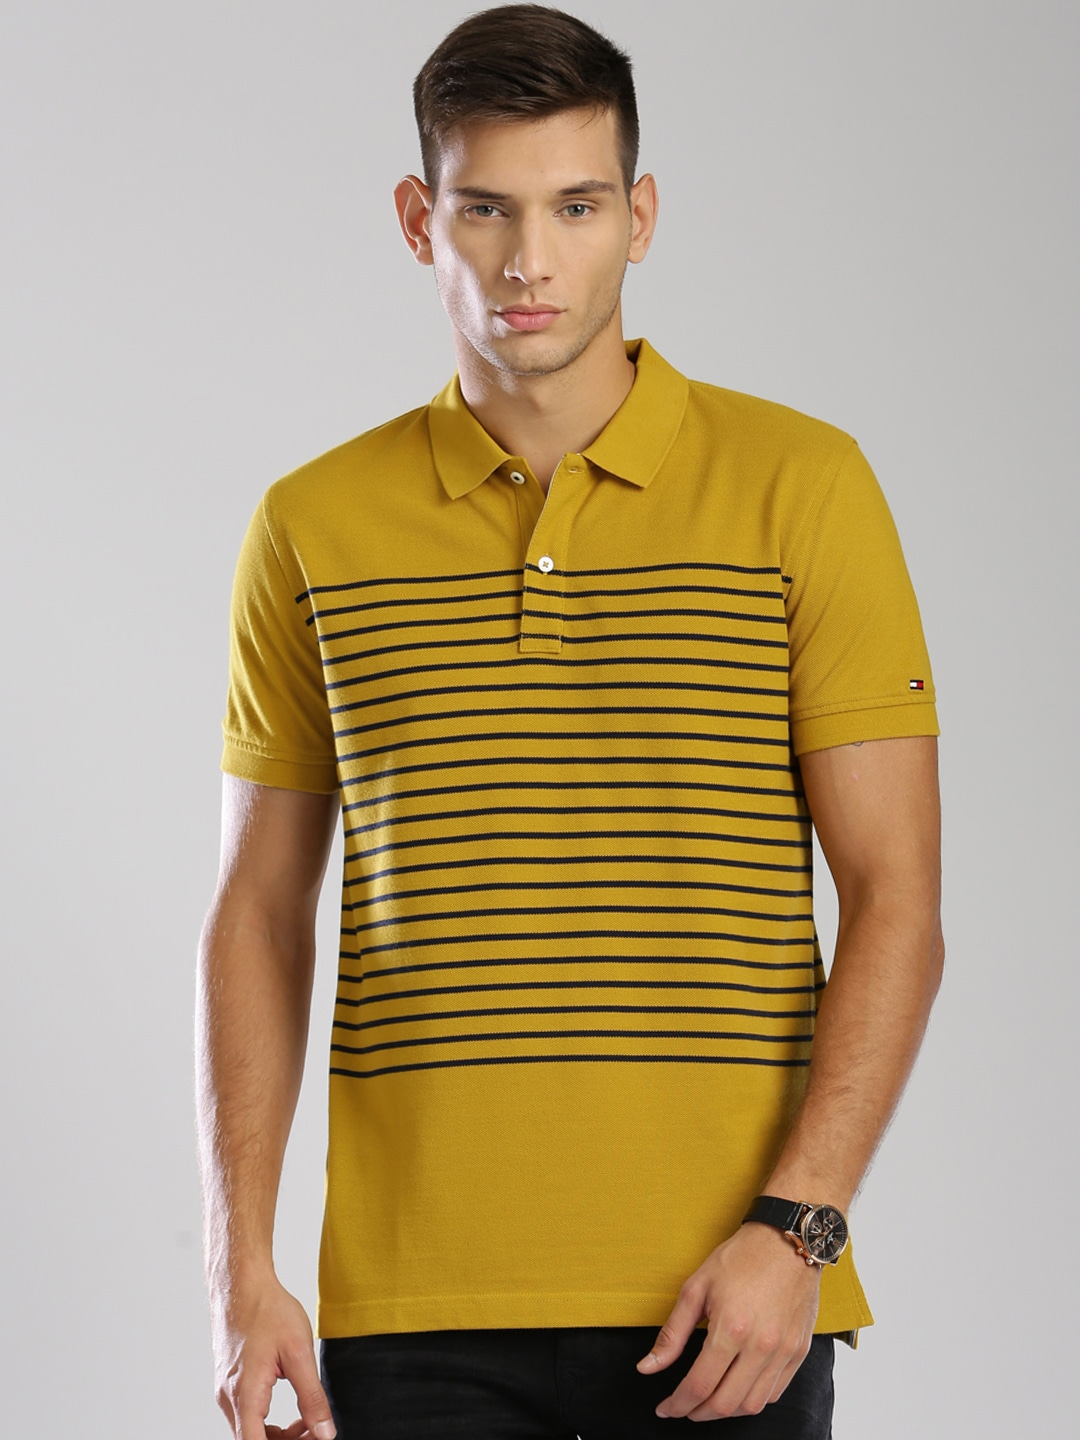 26654f9b5 Tommy hilfiger a6amk079 Men Mustard Striped Polo T Shirt- Price in India